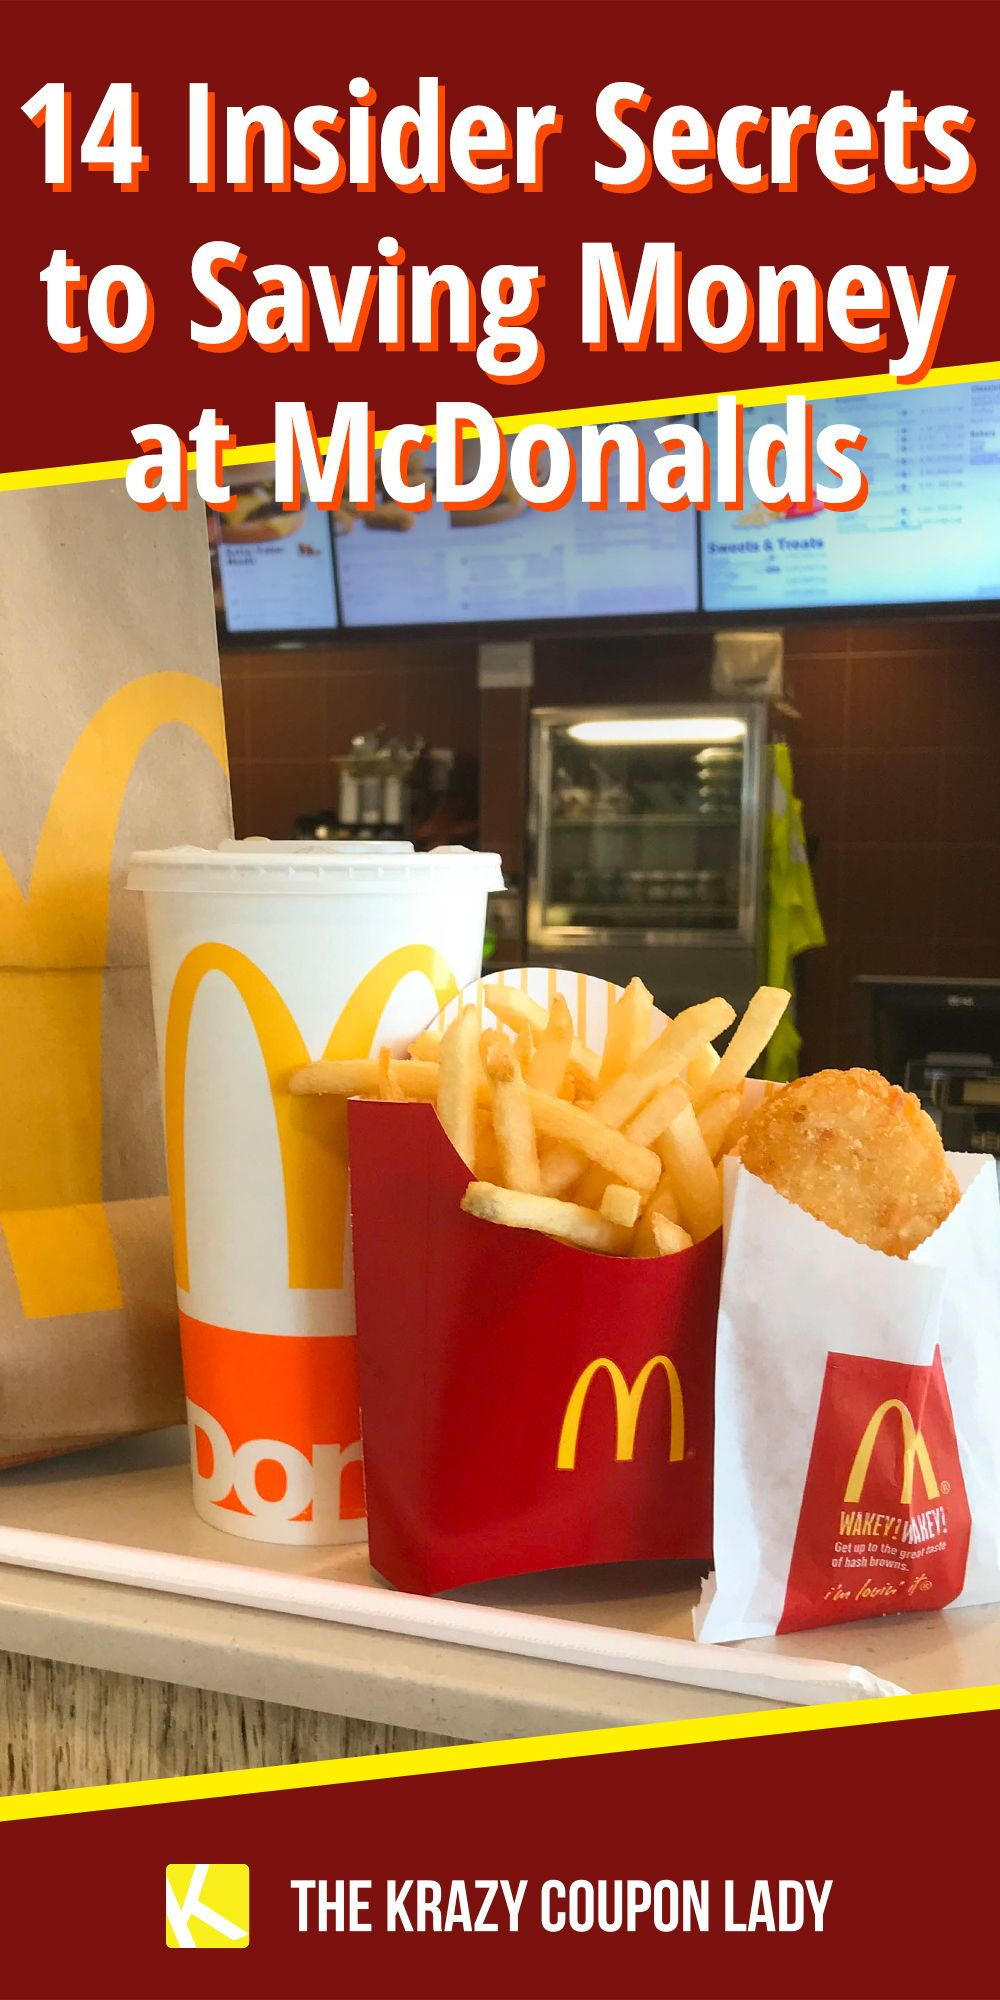 12 Insider Secrets You Need To Know To Save Money At Mcdonald S In 2020 Fast Food Coupons Free Fast Food Coupons Cheap Fast Food